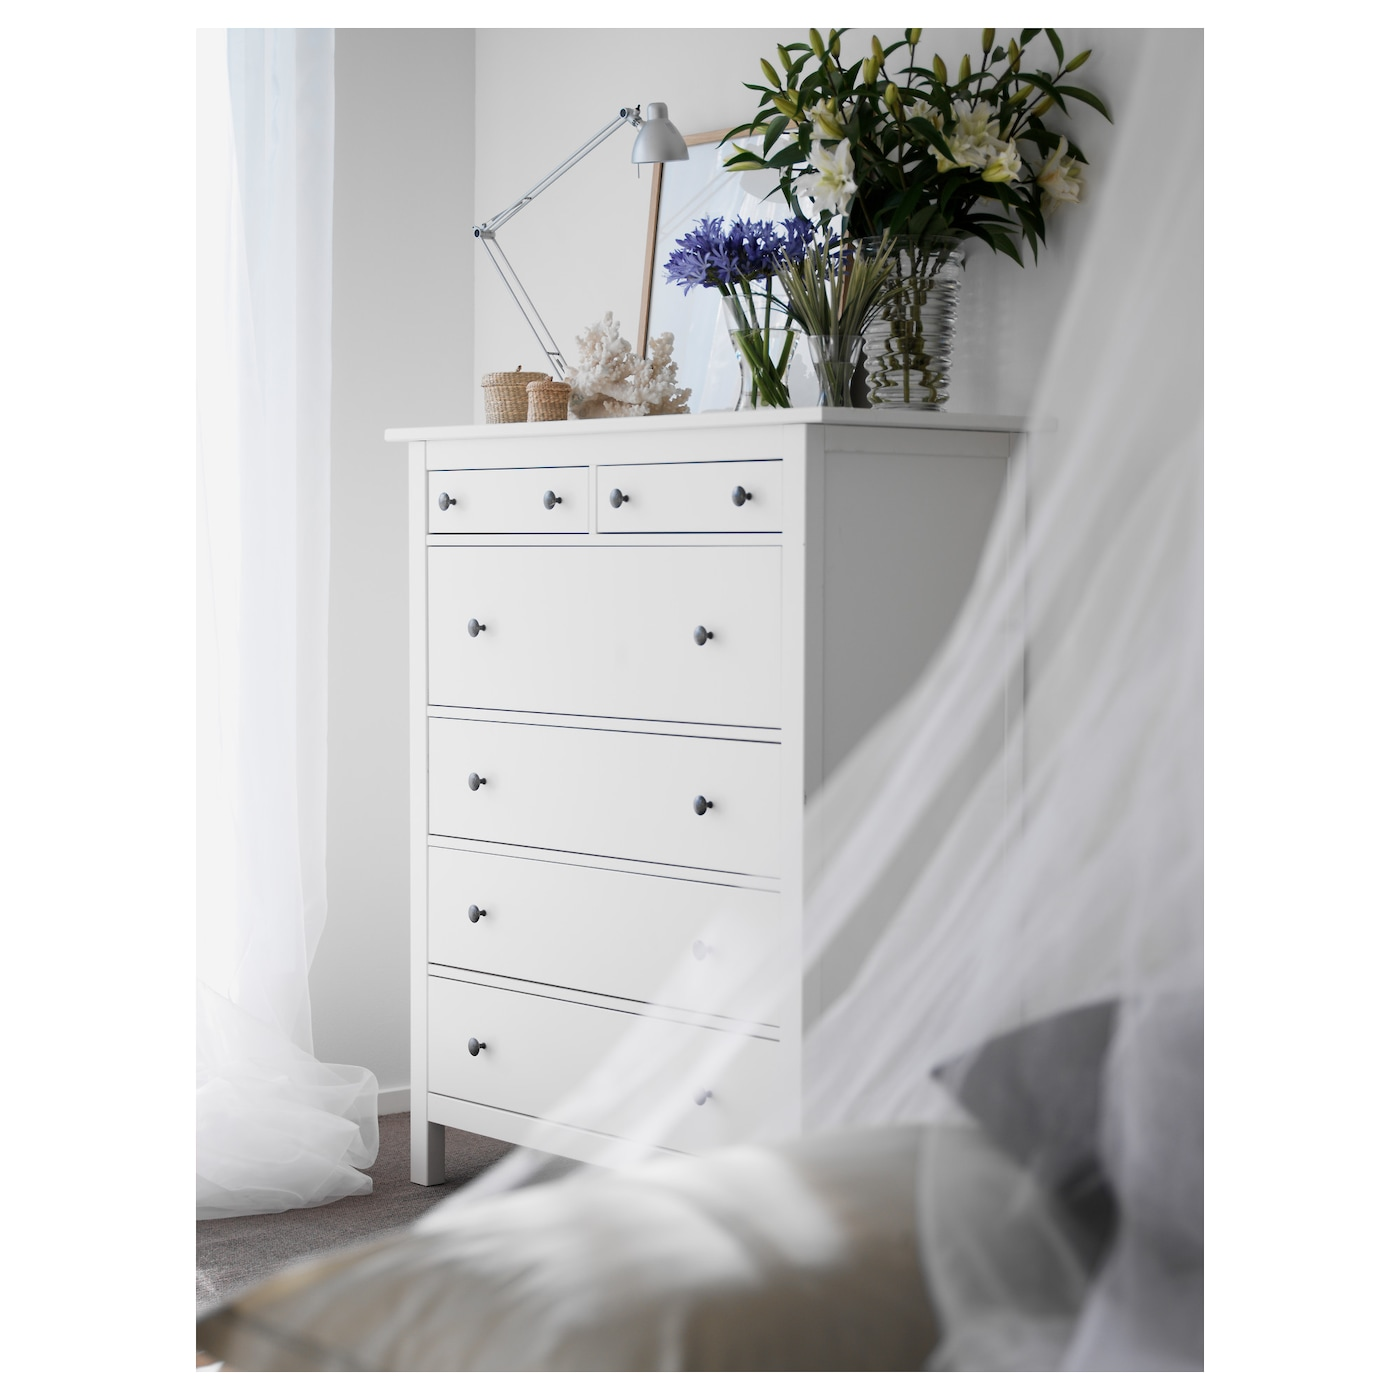 hemnes commode 6 tiroirs teint blanc 108 x 131 cm ikea. Black Bedroom Furniture Sets. Home Design Ideas